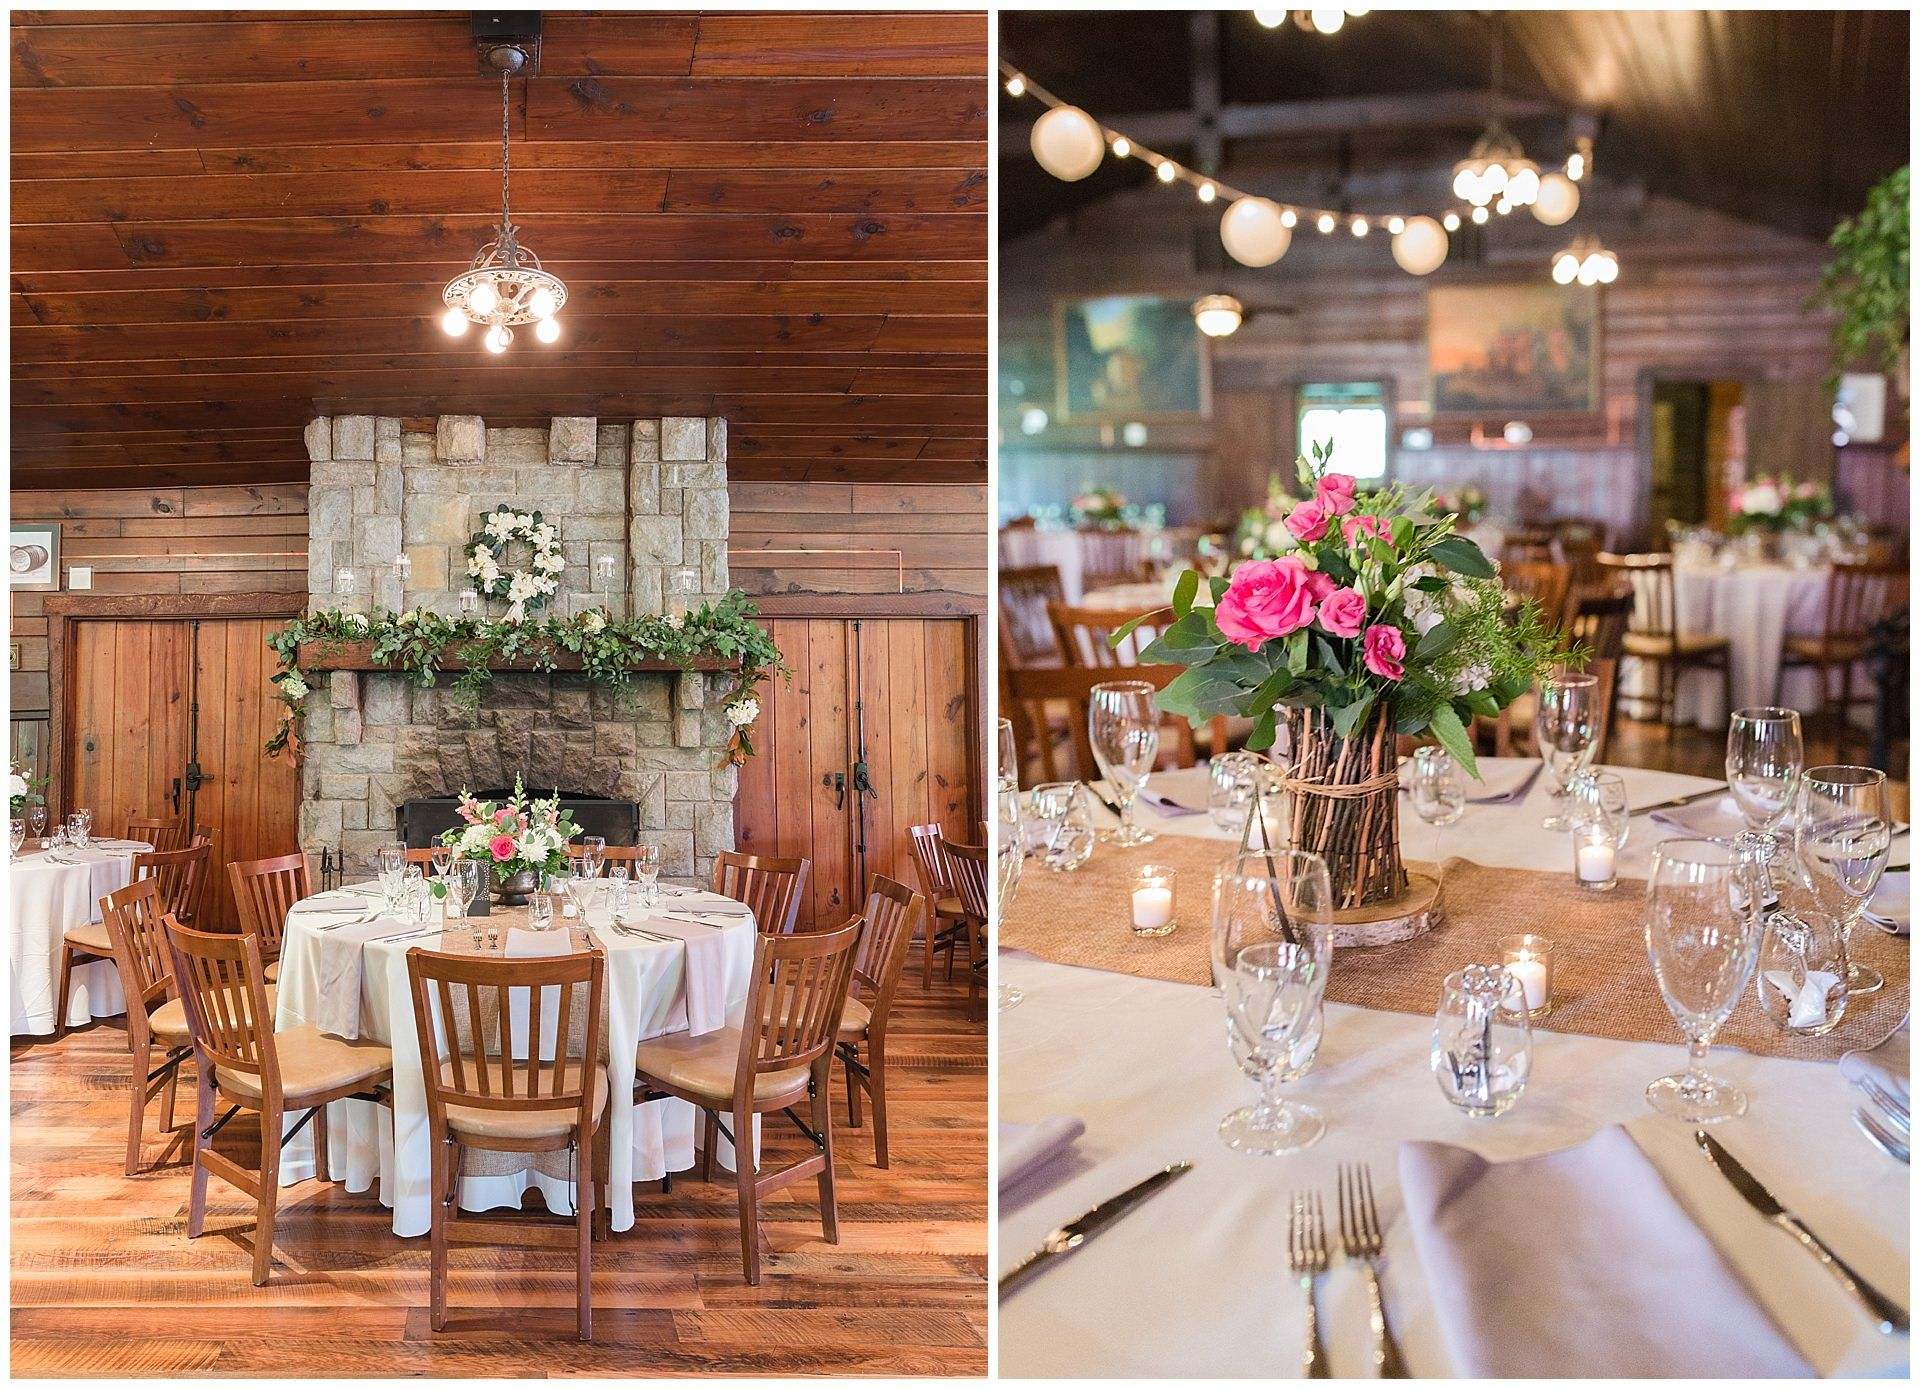 Spring Wedding Reception At Buffalo Trace Distillery In Frankfort